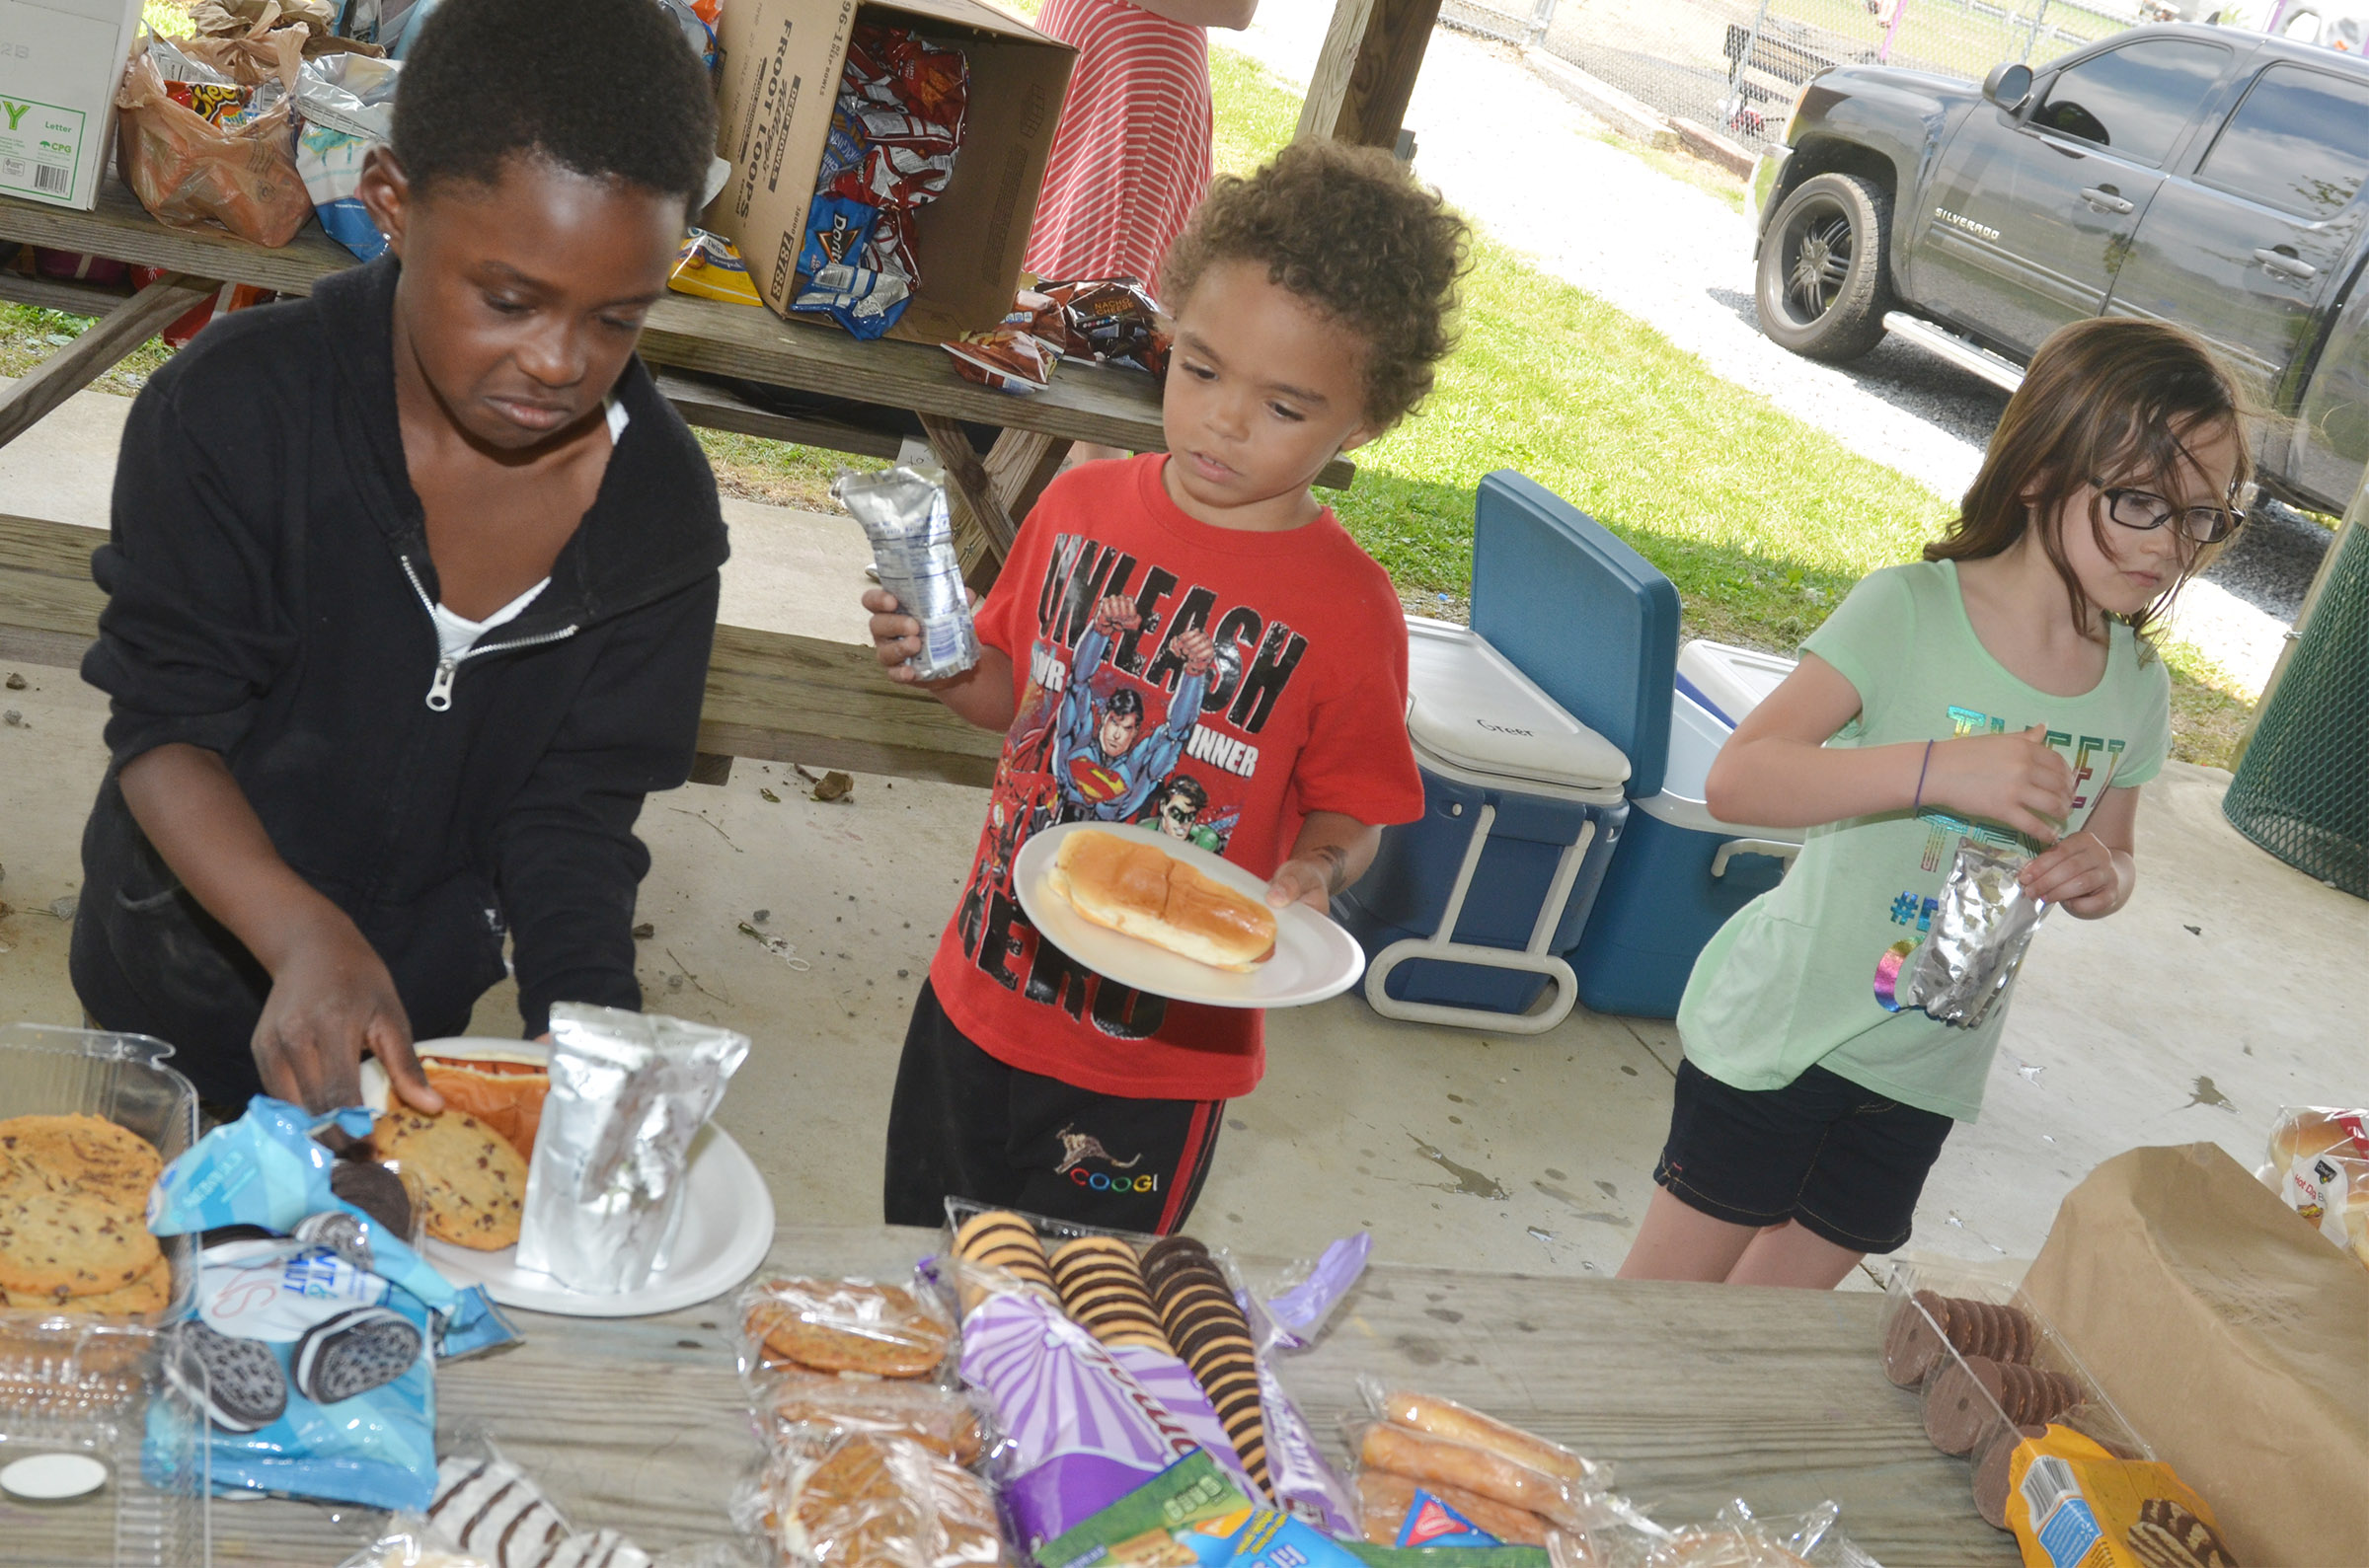 CES first-graders Zion Mitchell, at left, and Javion Milby get food at their cookout.